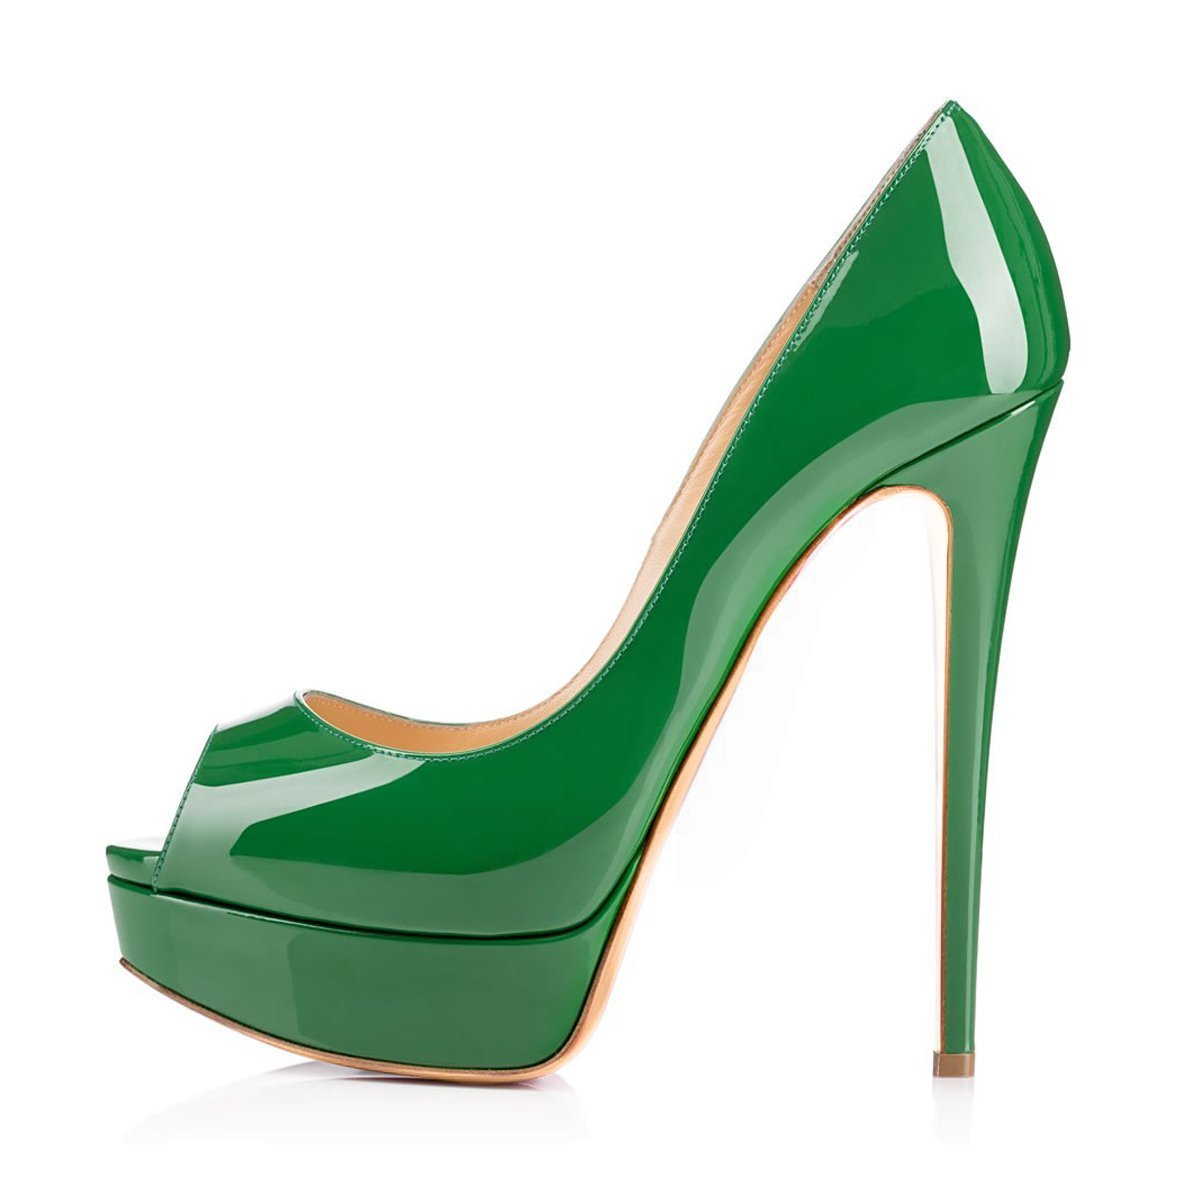 Caitlin Pan Womens Peep Toe Pumps Platform Stiletto Sandals High Heels Slip On Dress Pumps 5-14 US B07FCHJ56W 13 M US|Green/Red B0tt0m